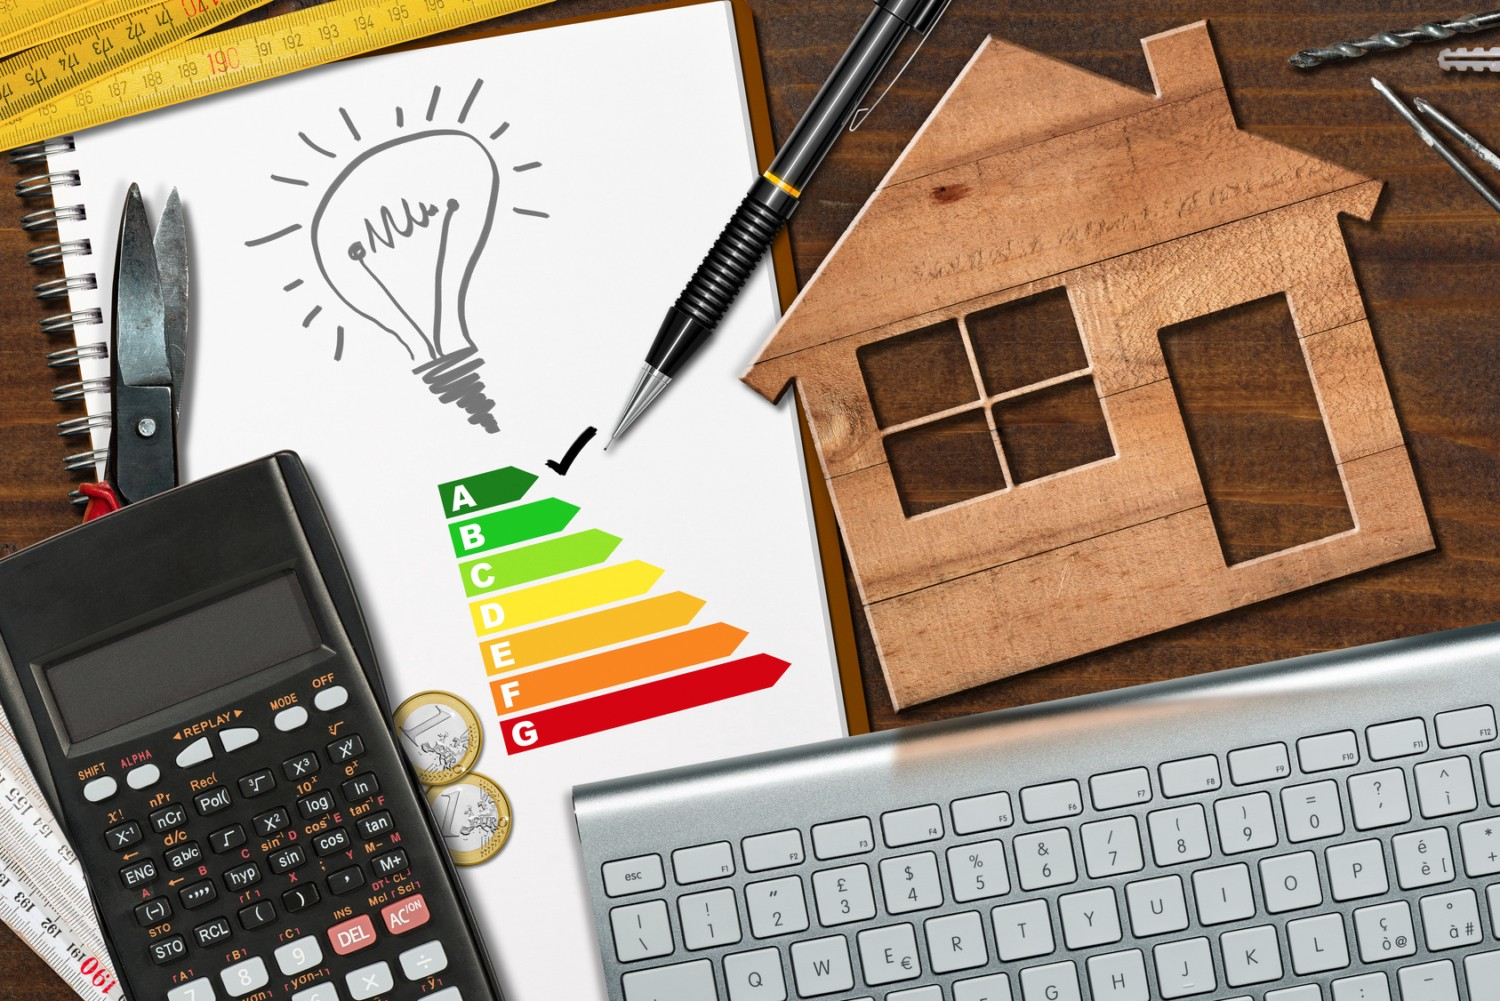 Easy Ways To Make Your Home More Energy Efficient Einsurance